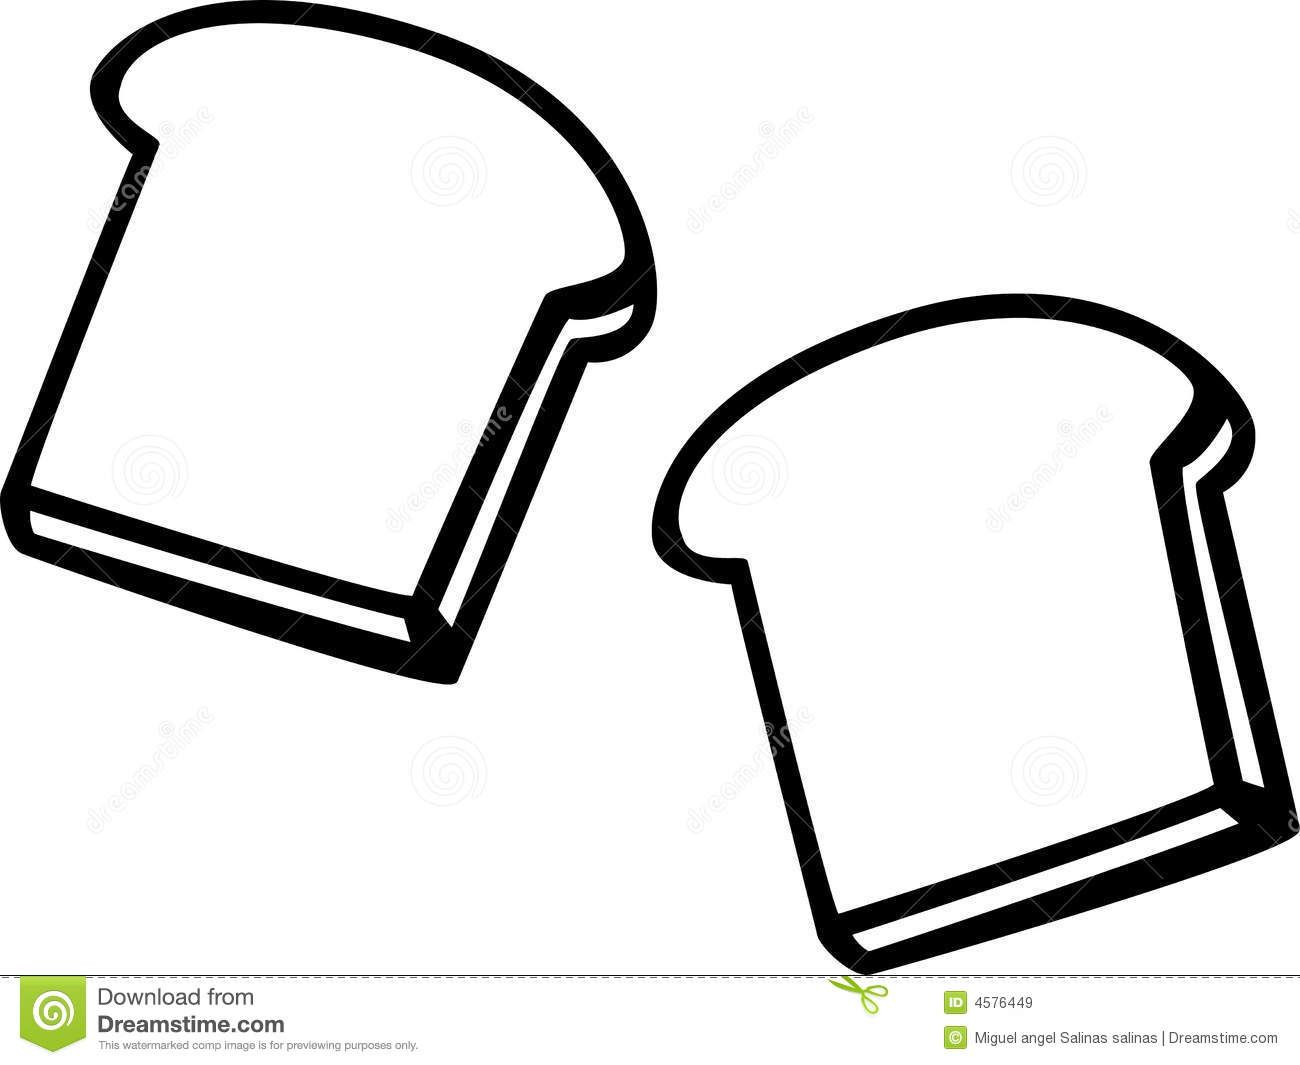 Http Thumbs Dreamstime Com Z Toast Bread Slices Vector Illustration 4576449 Jpg Free Coloring Pages Coloring Pages Color